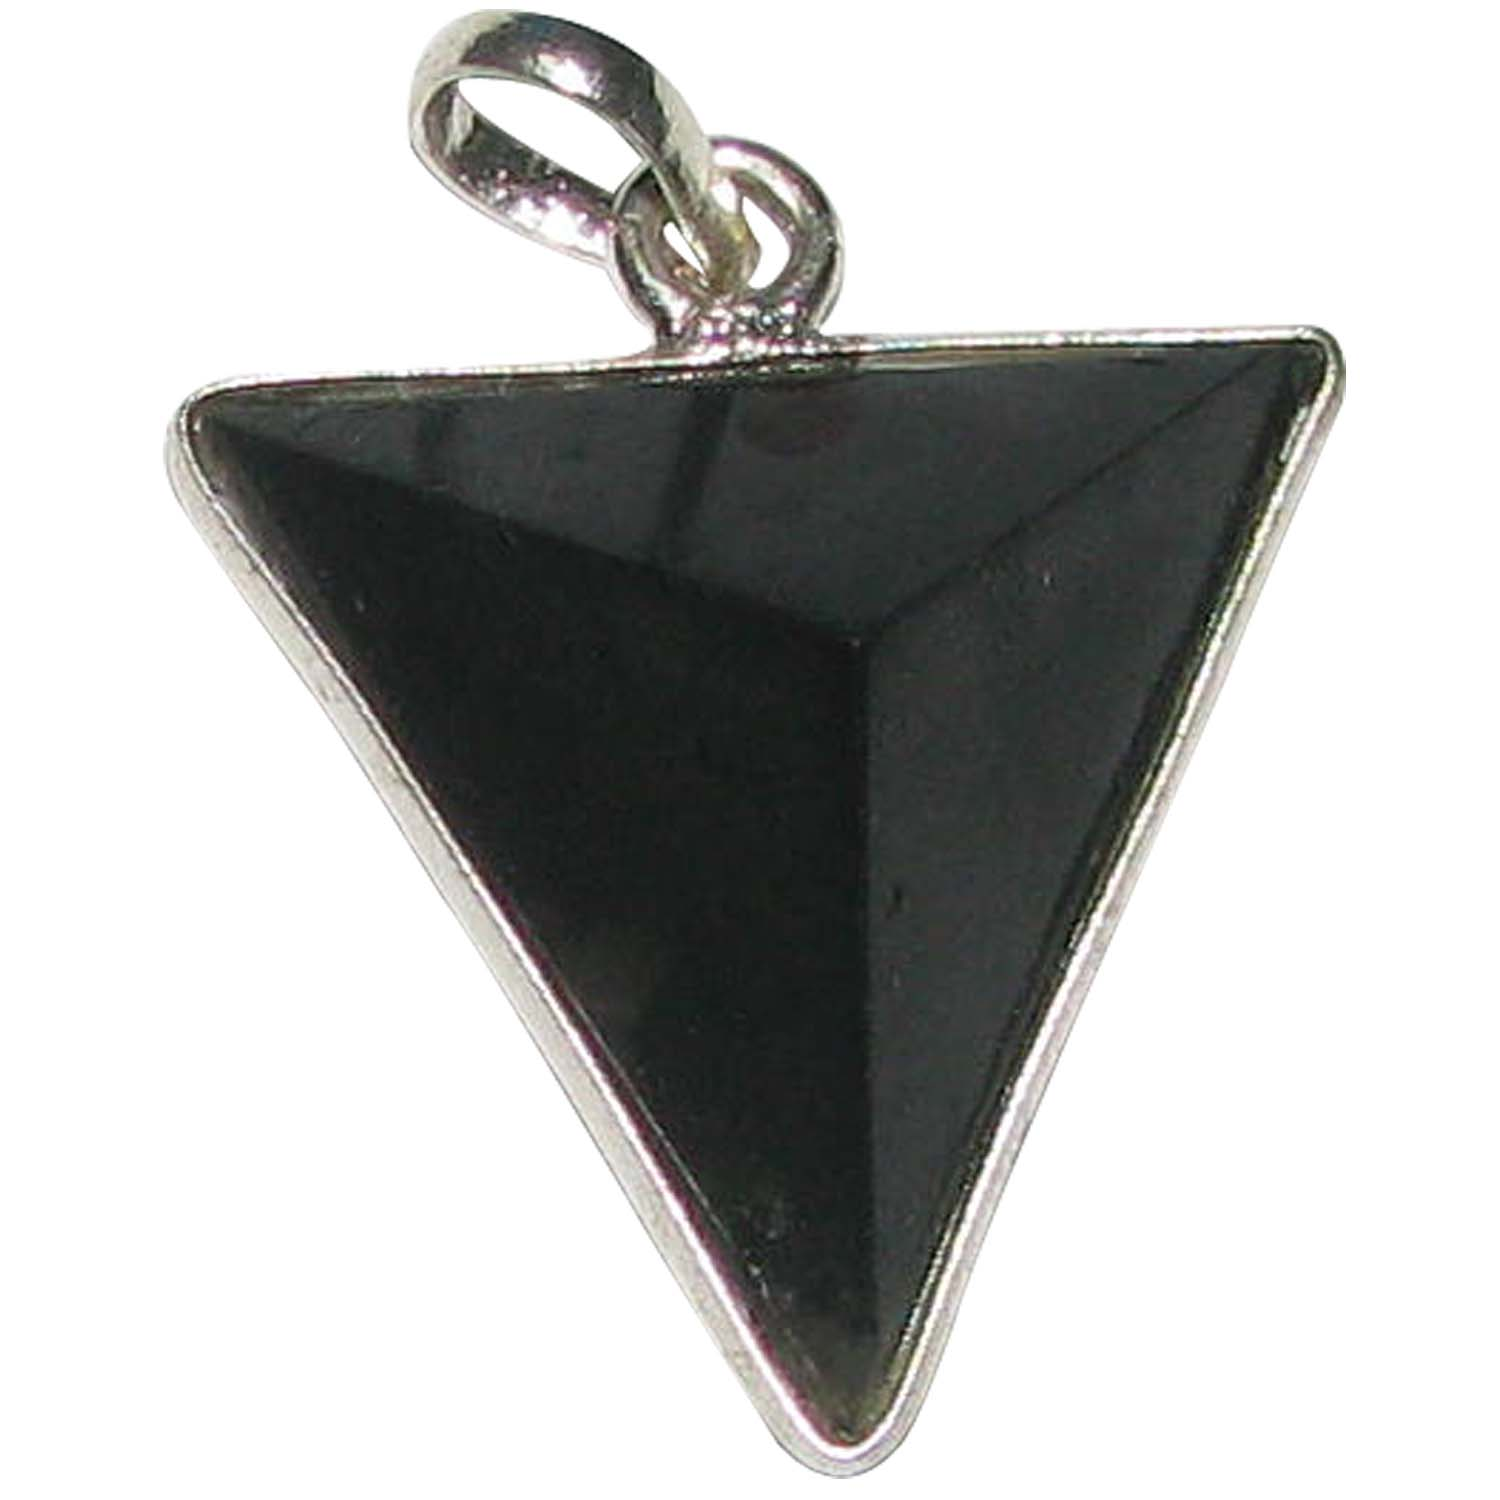 edgy zoom triangular loading kuberbox pendant com